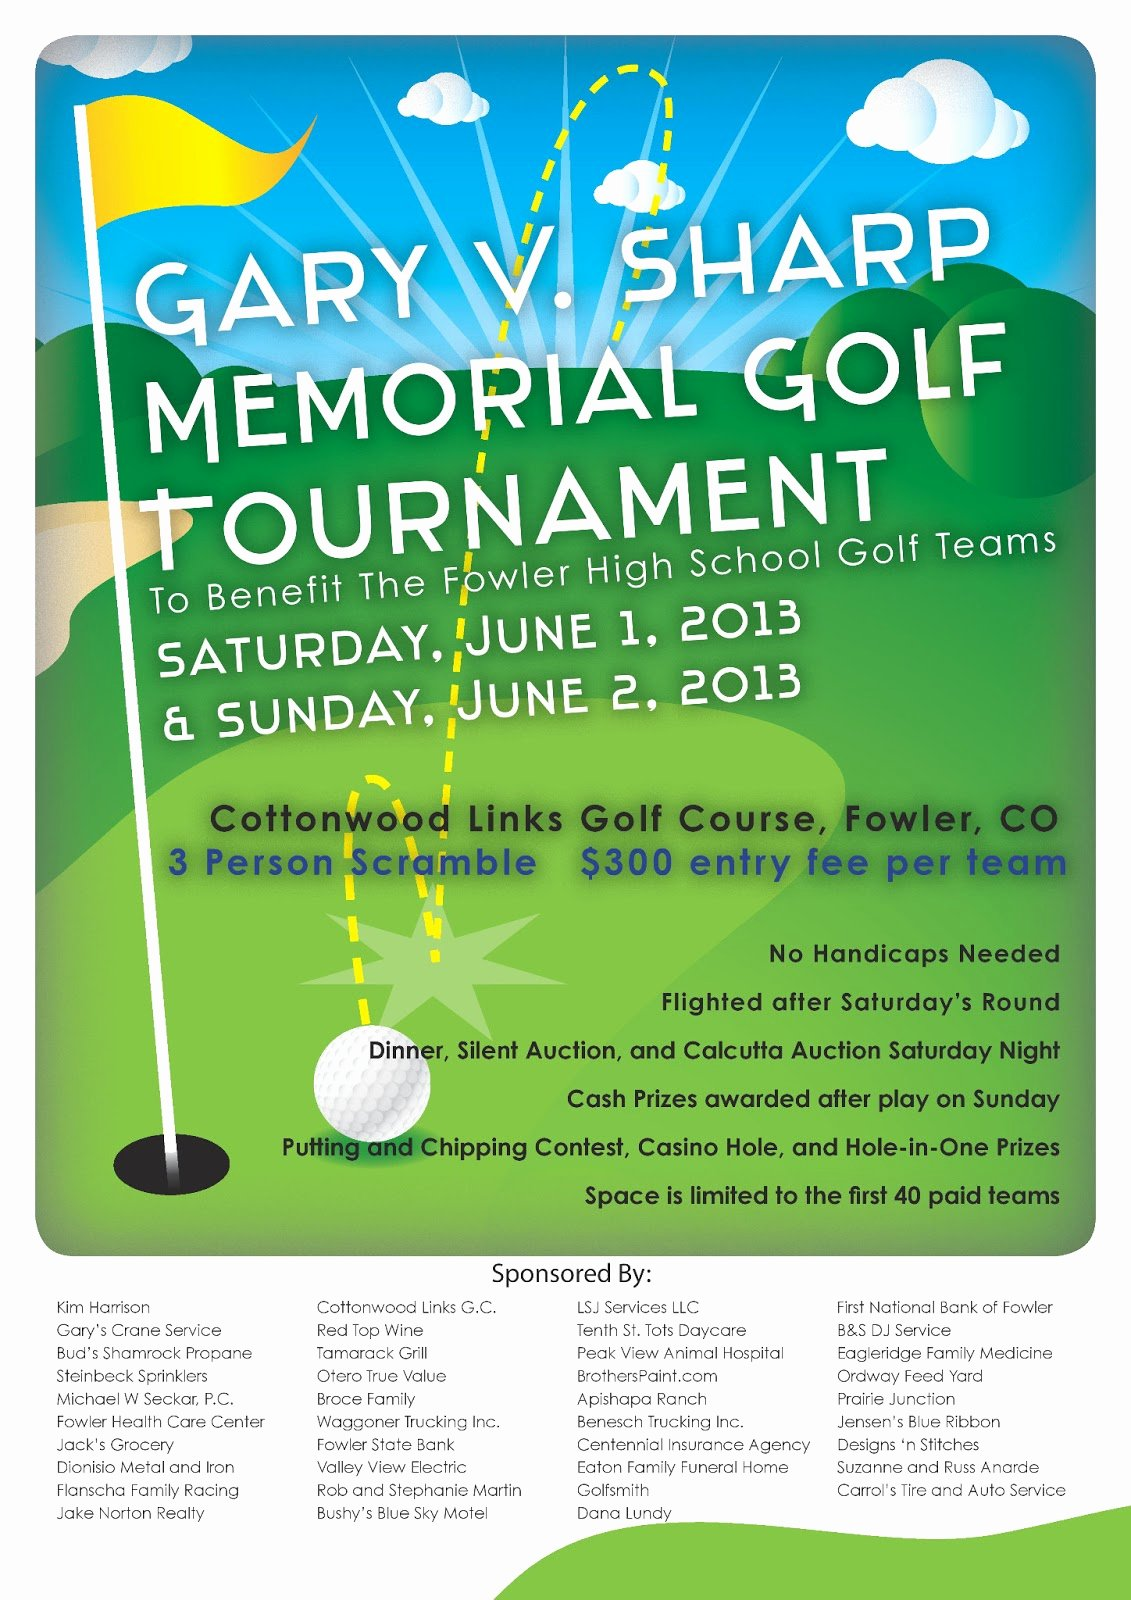 Gary V Sharp Memorial Golf tournament tournament Flyer